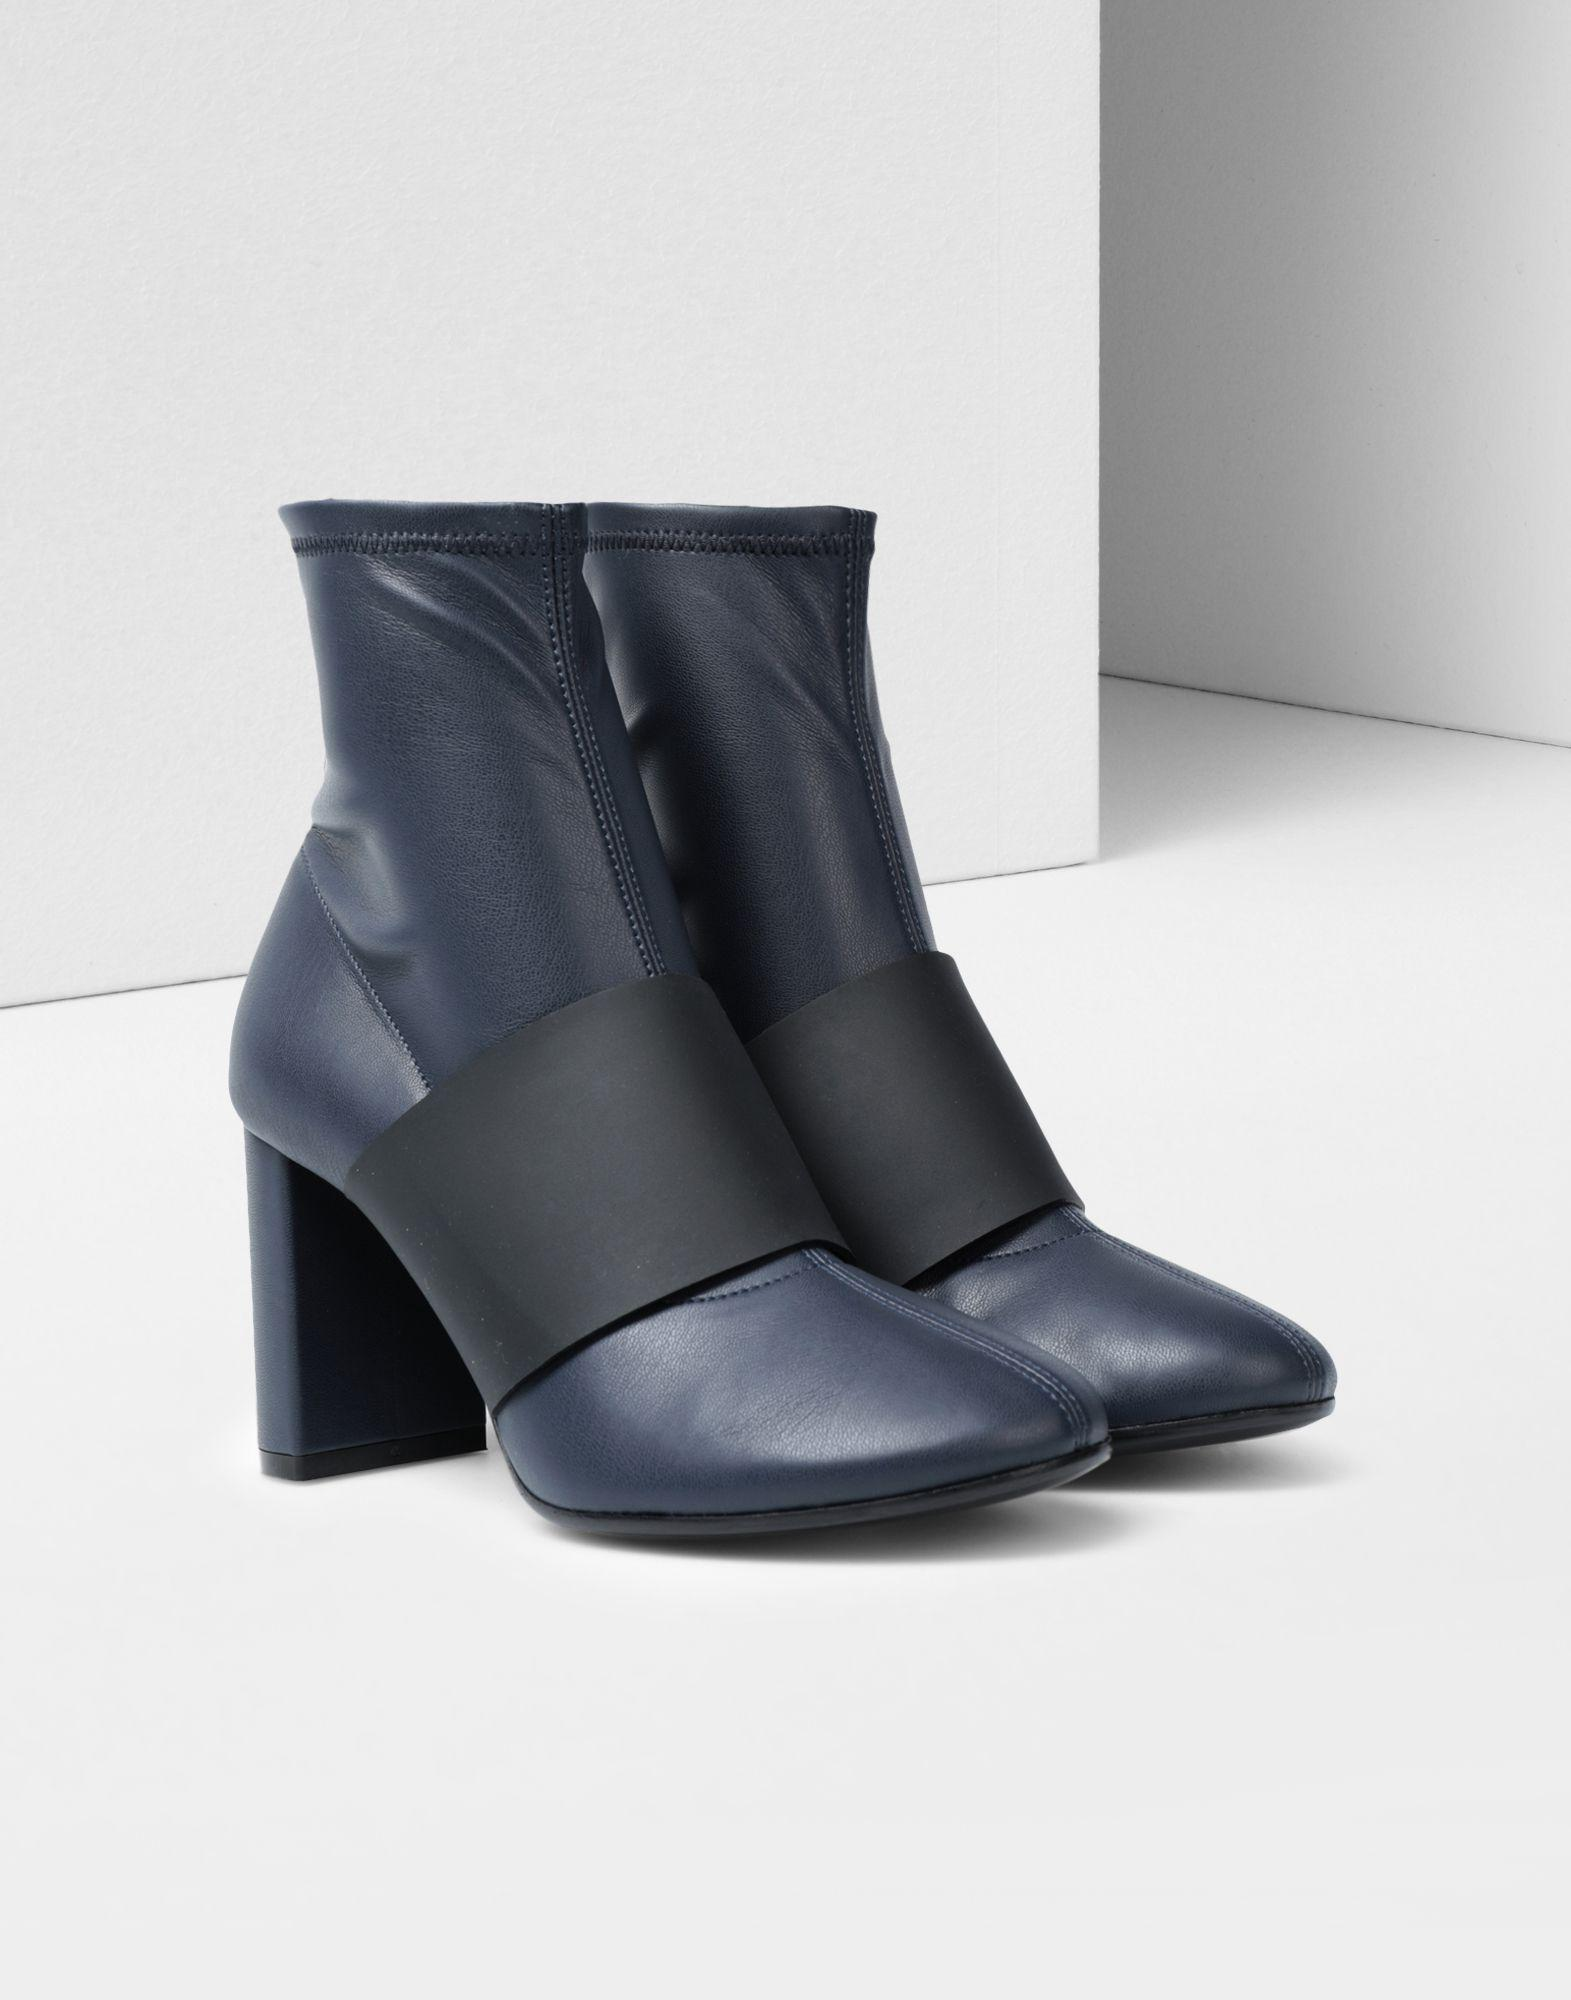 38a4add8001 Lyst - Maison Margiela Ankle Boots With Strap in Blue